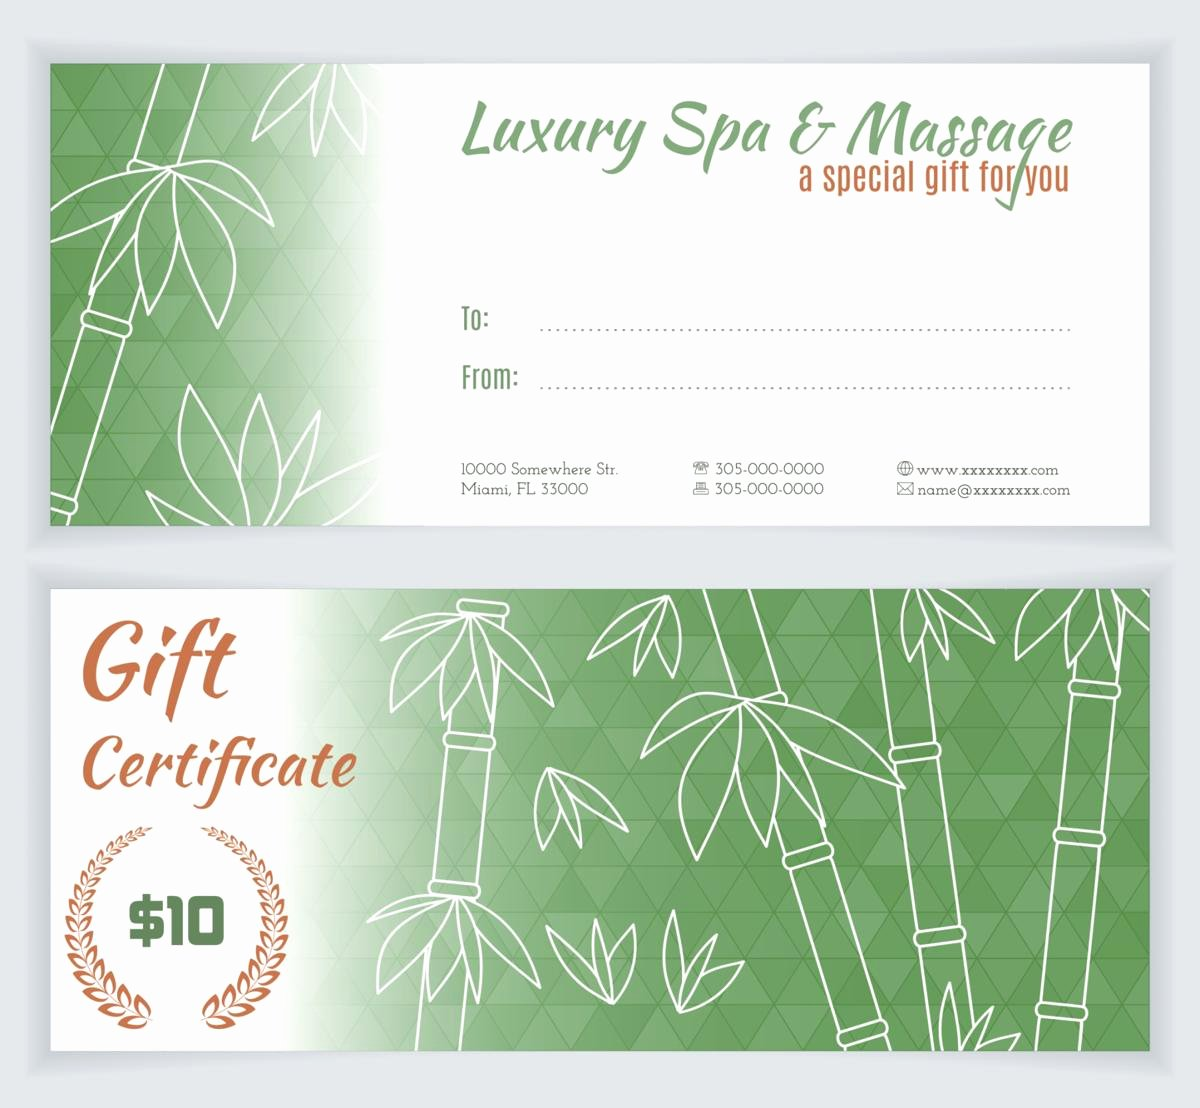 Gift Certificate Wording Fresh Sample Wordings for Gift Certificates You Ll Want to Copy now